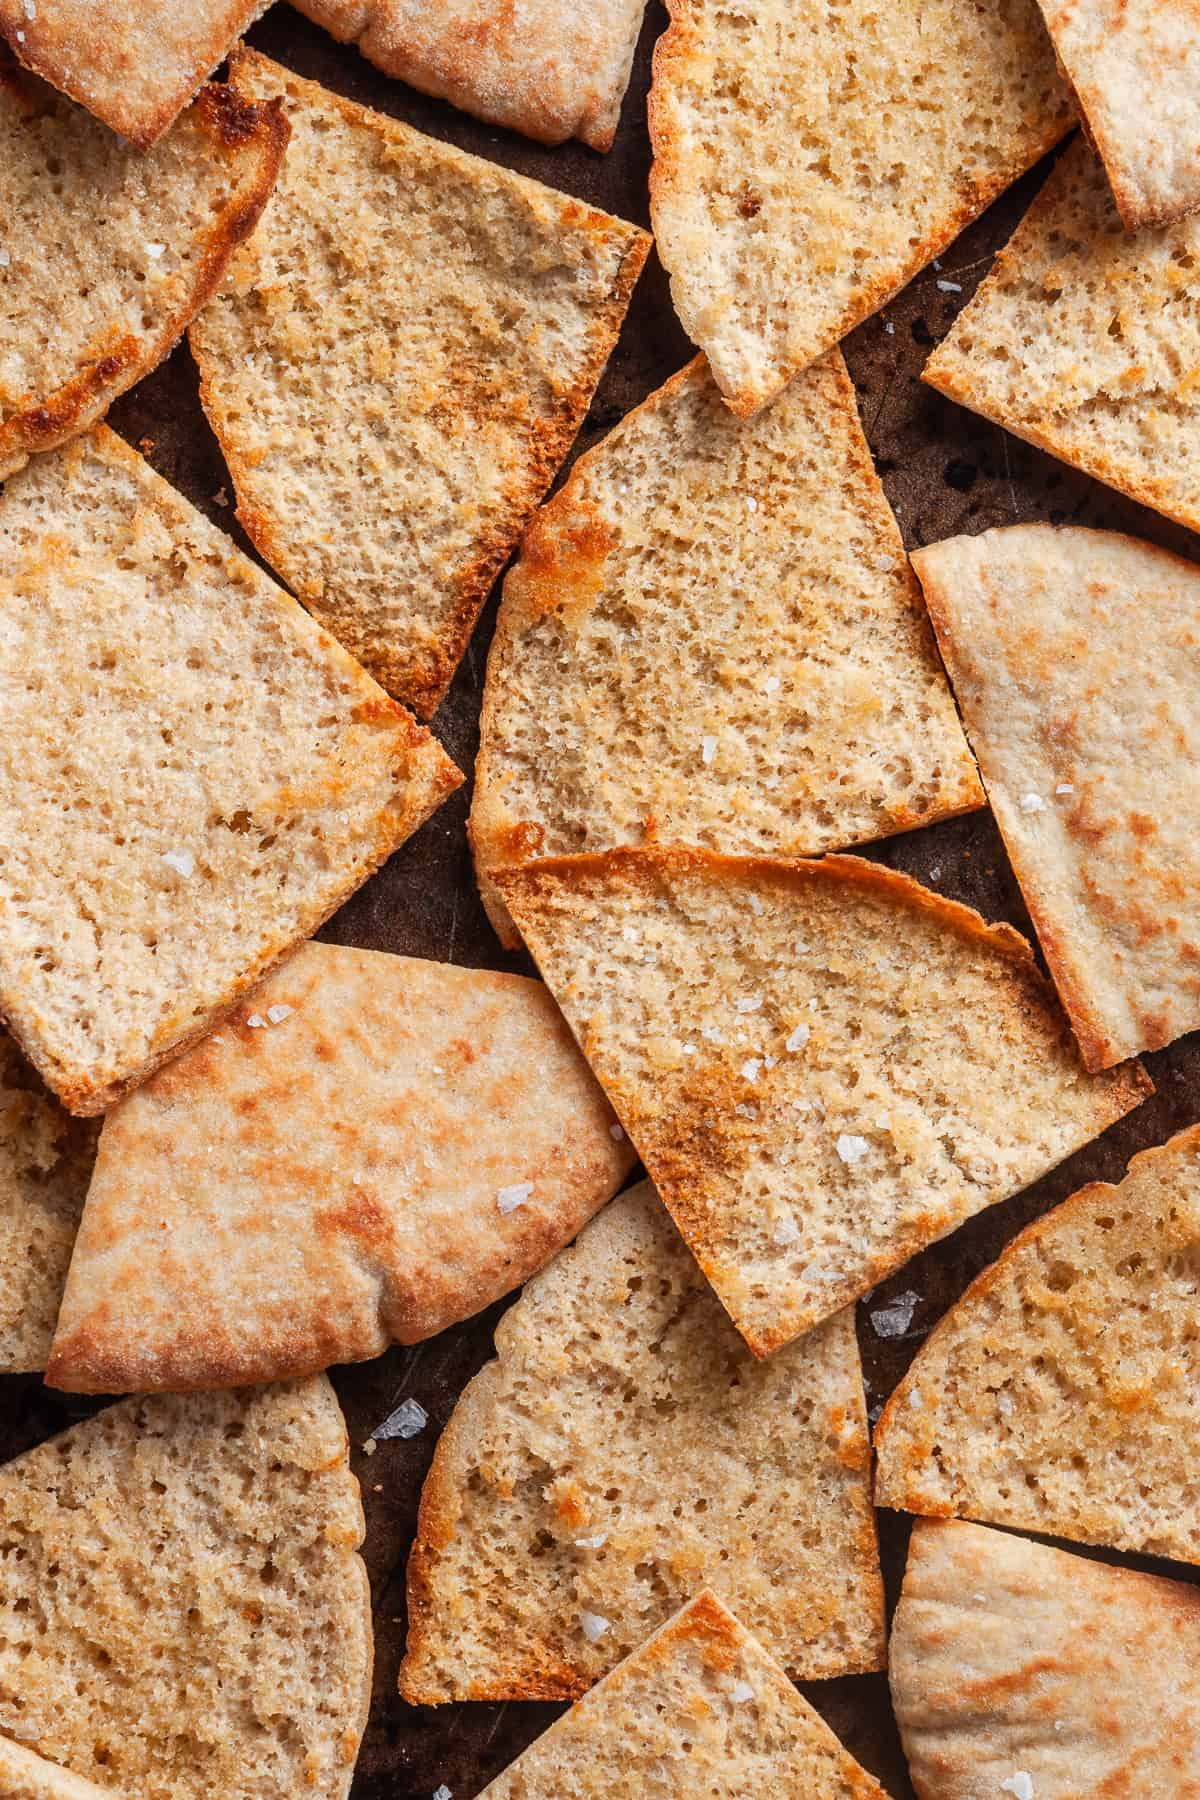 Overhead shot of cooked pita chips on a baking tray.